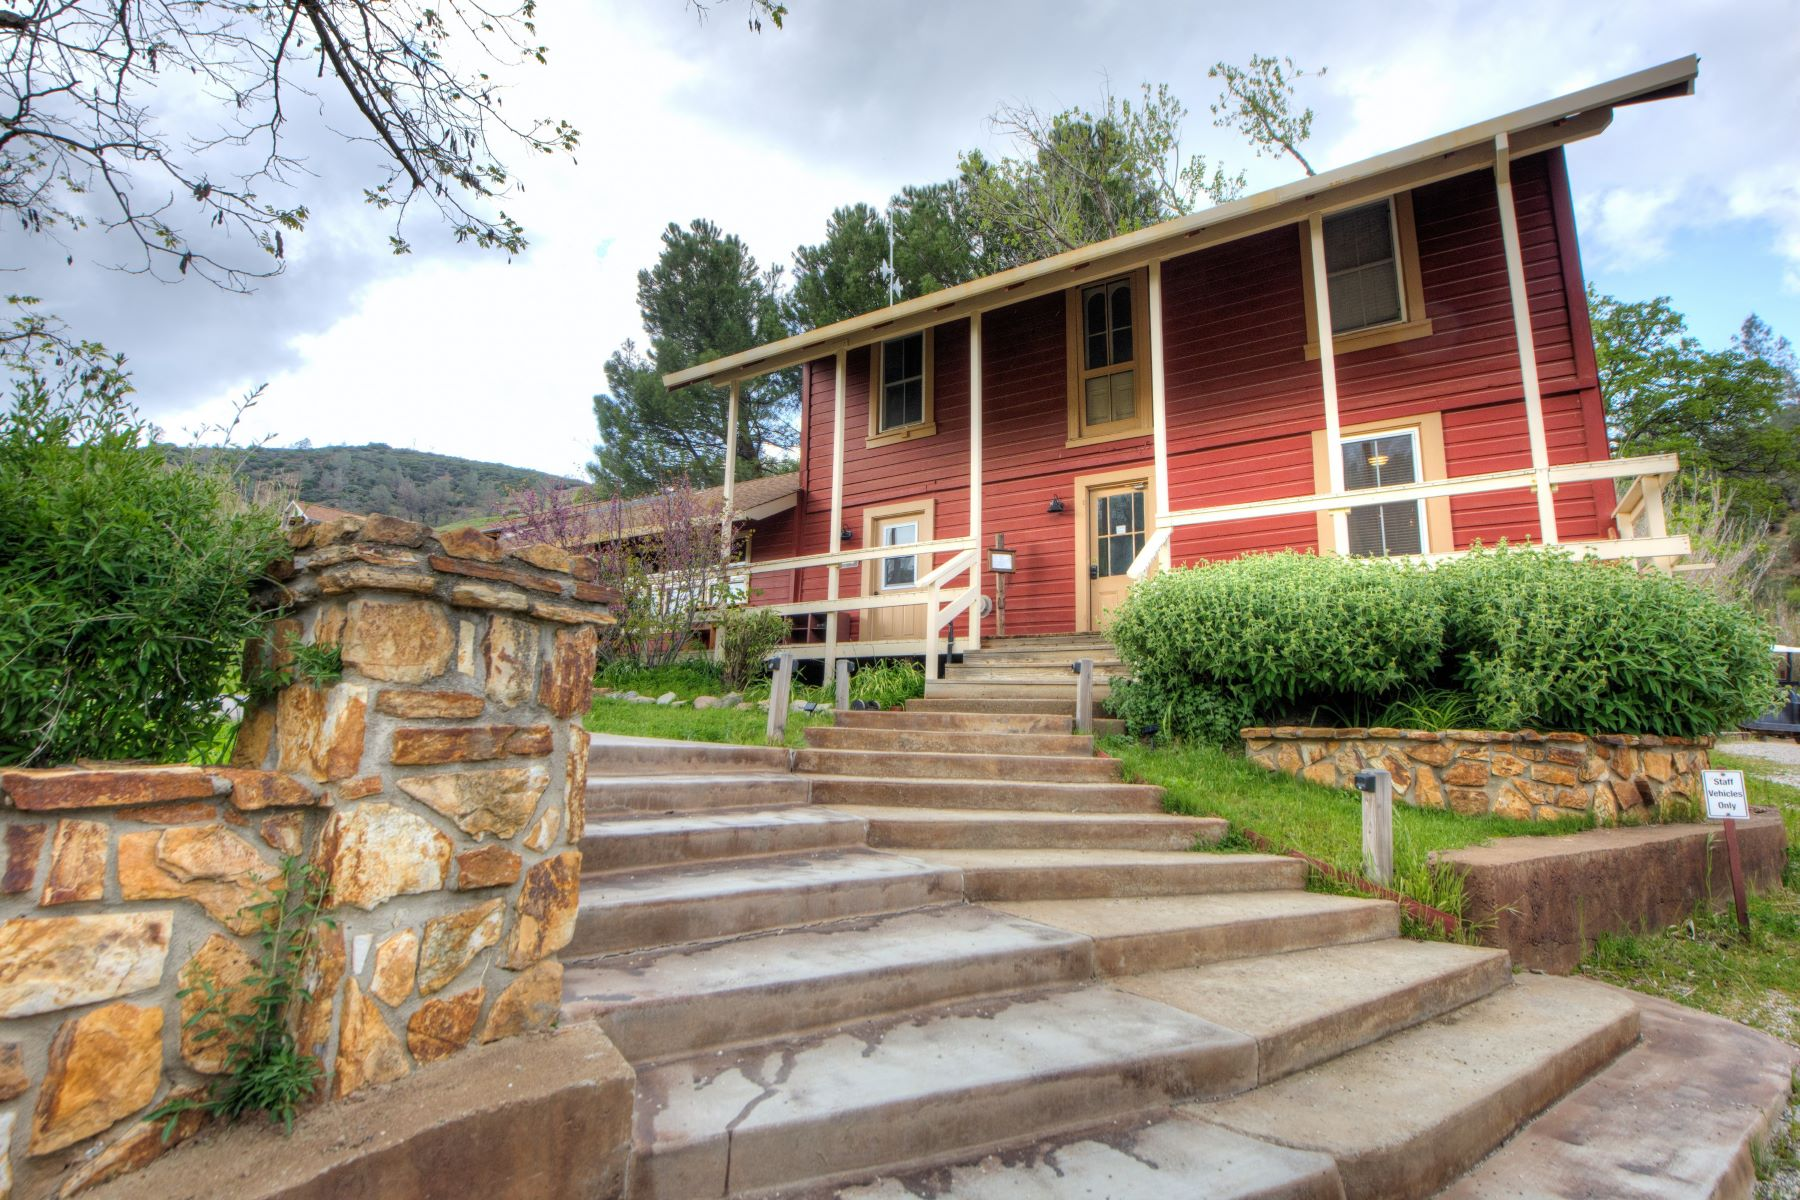 Single Family Homes for Sale at Iconic Wilbur Hot Springs 3335 Wilbur Springs Road Williams, California 95987 United States